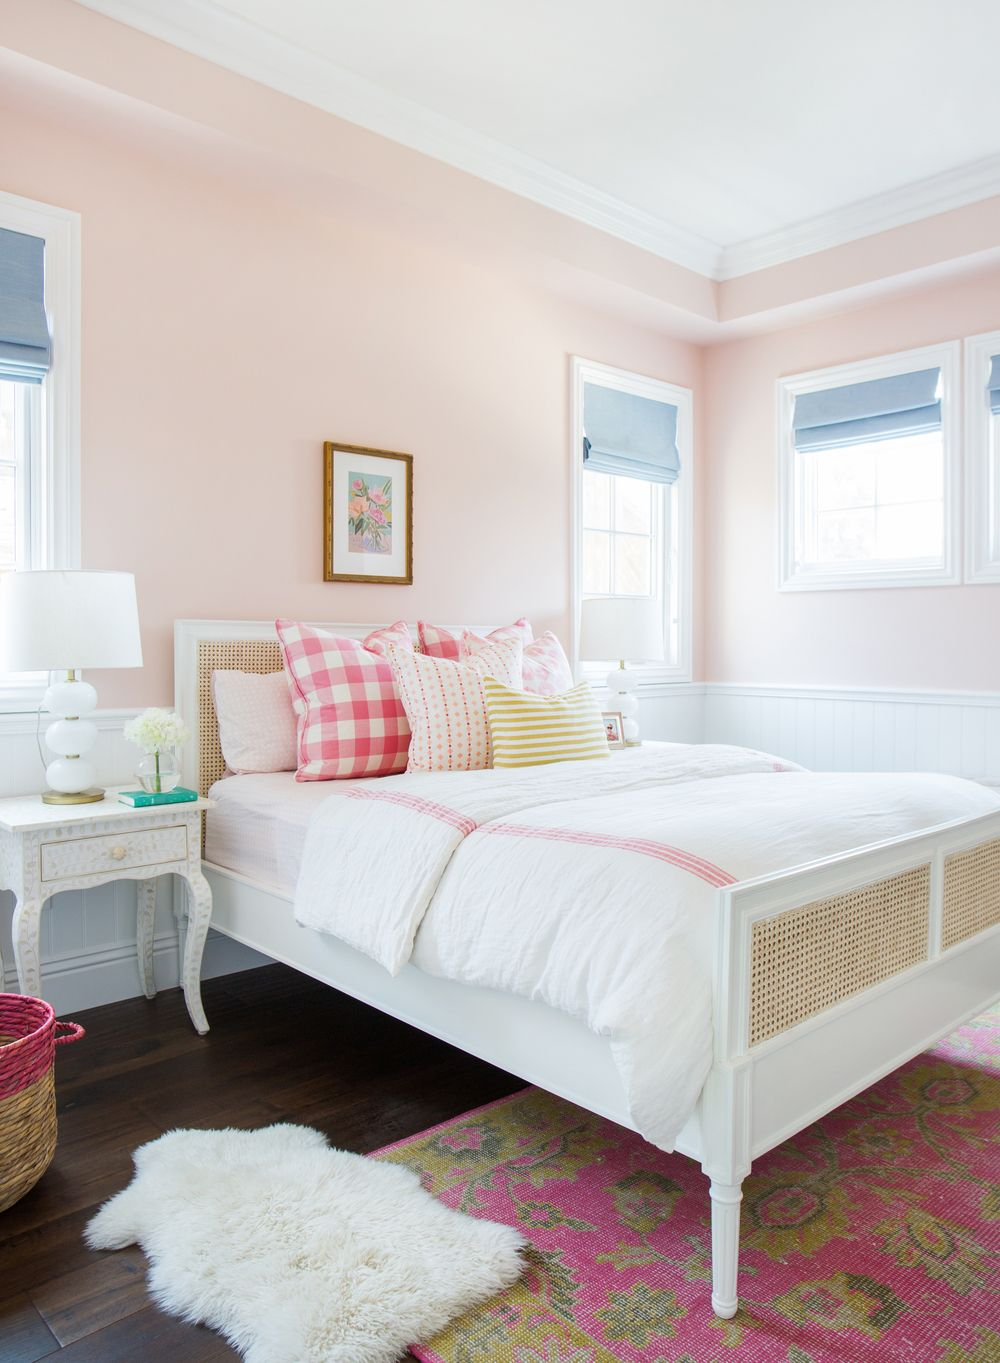 marvellous teenage girl bedroom color ideas | Go-to Paint Colors for Pretty Blushing Walls in 2019 ...